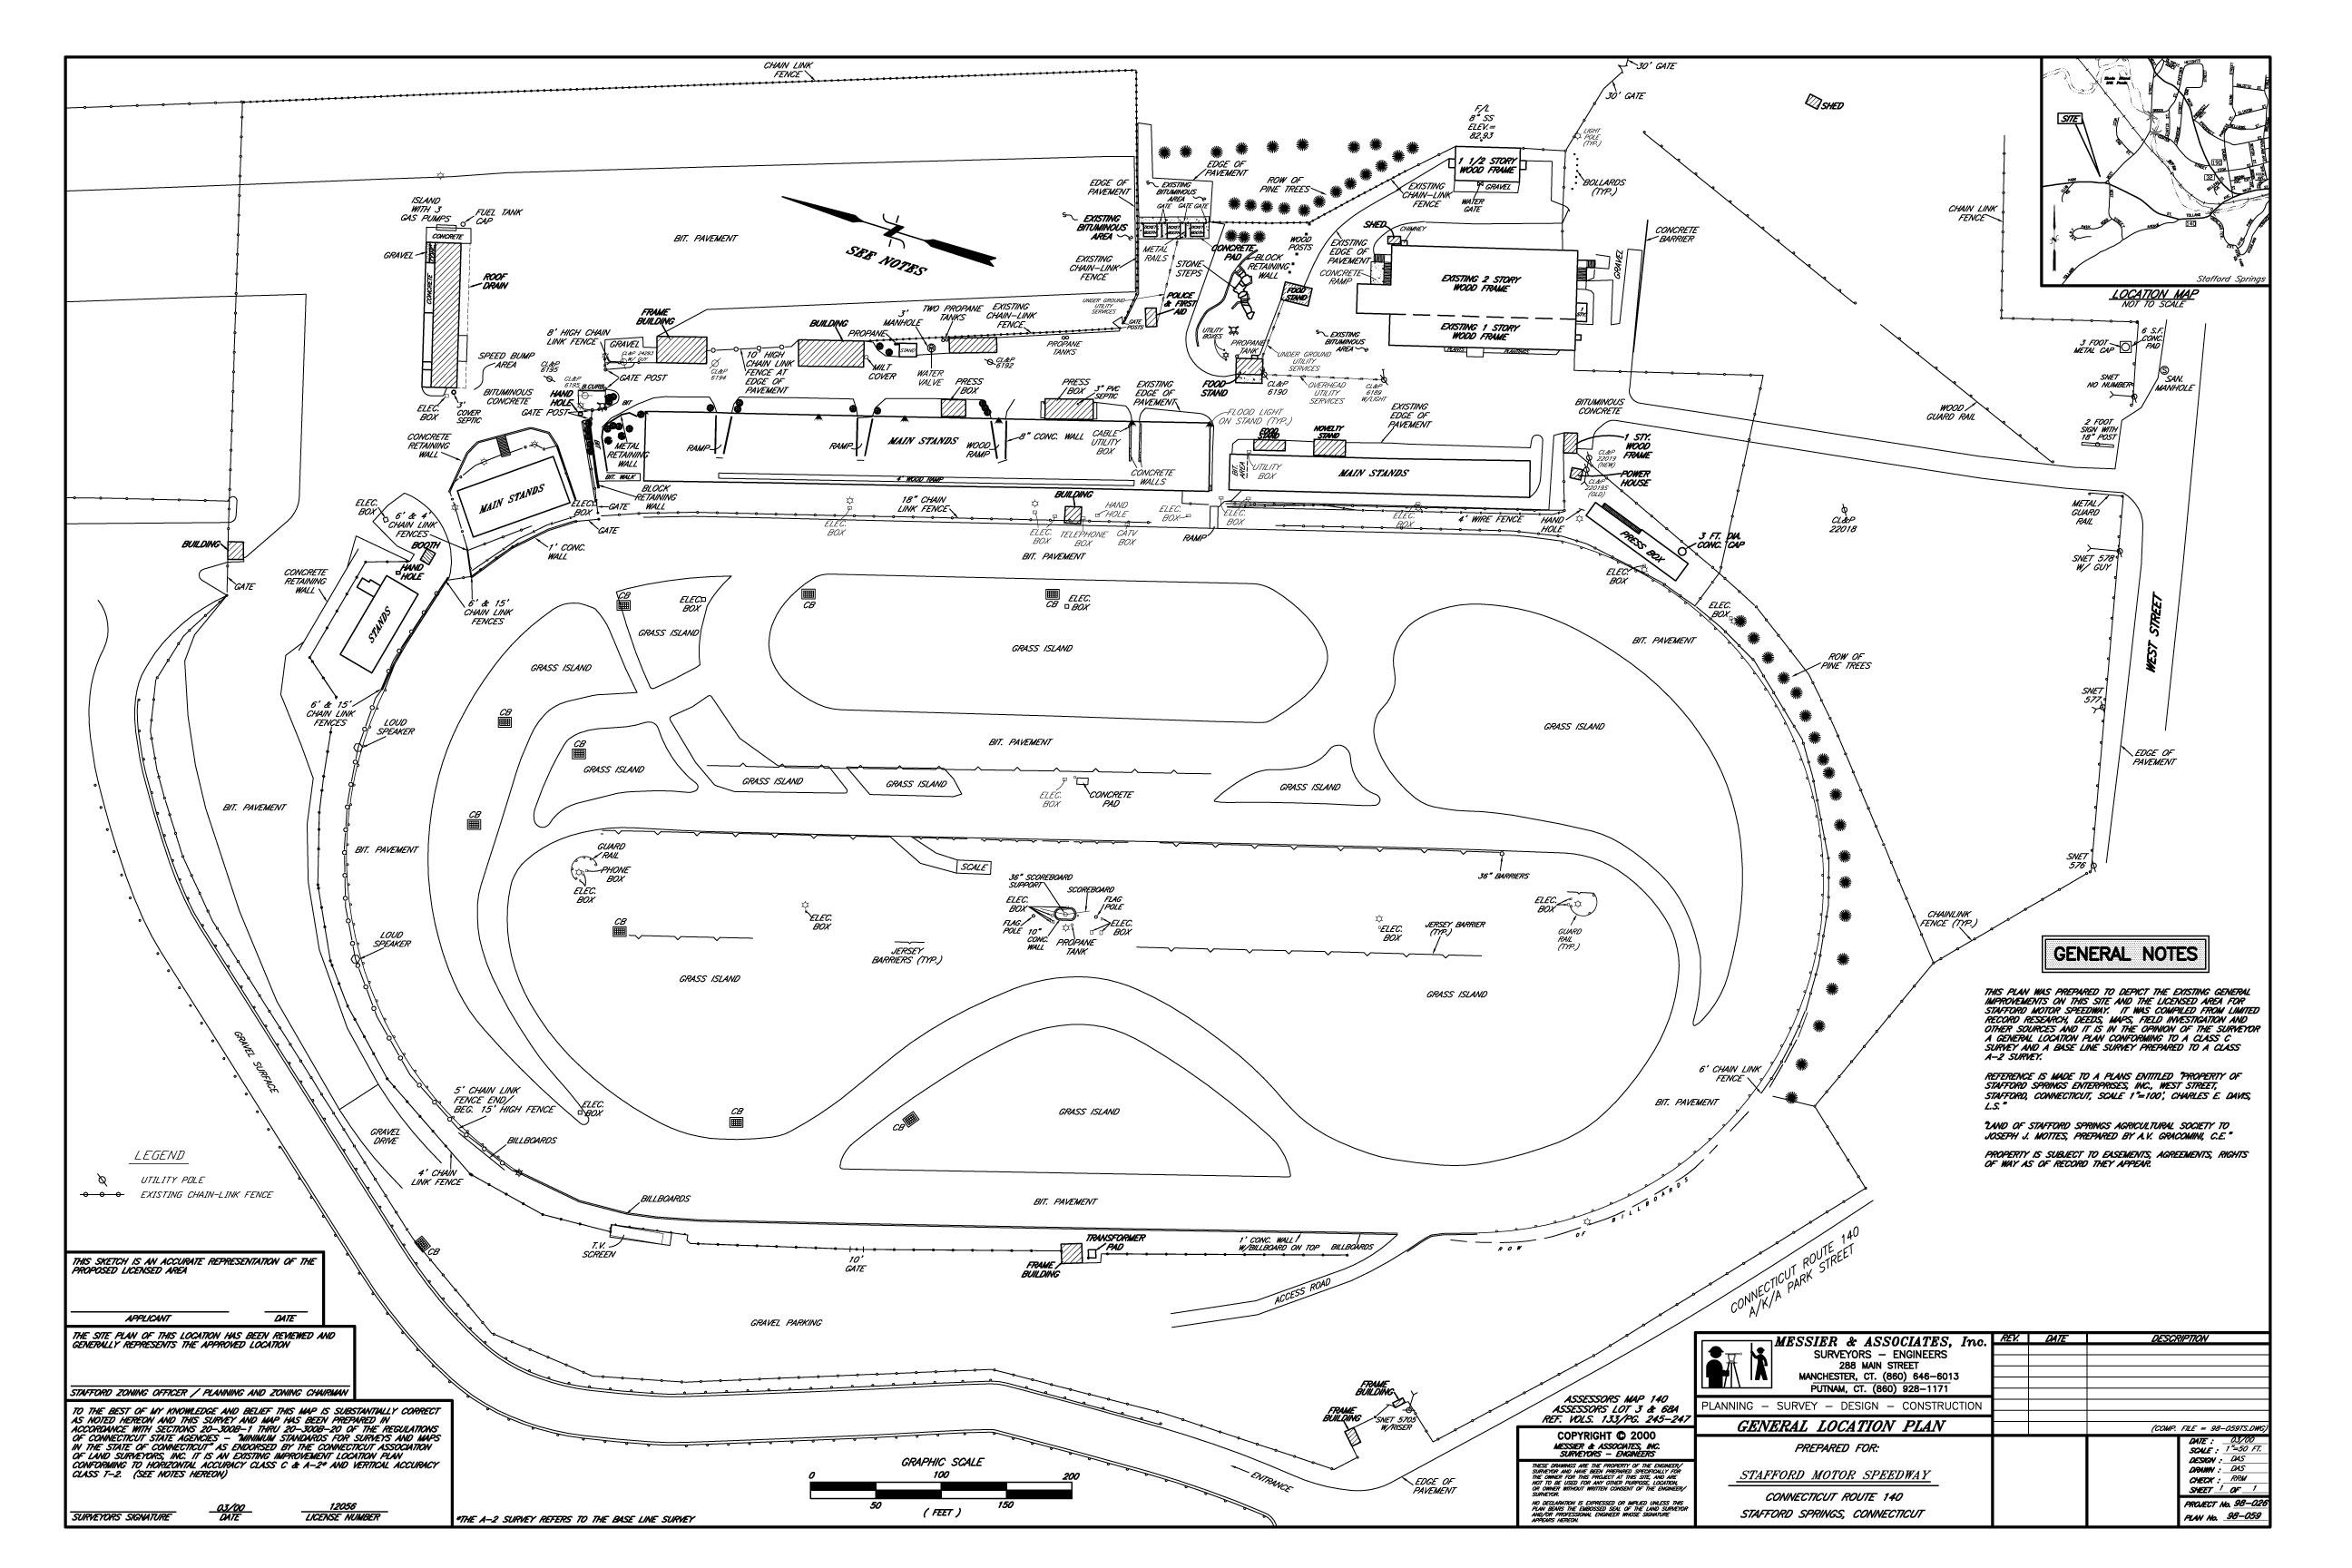 Stafford Speedway Ground Layout